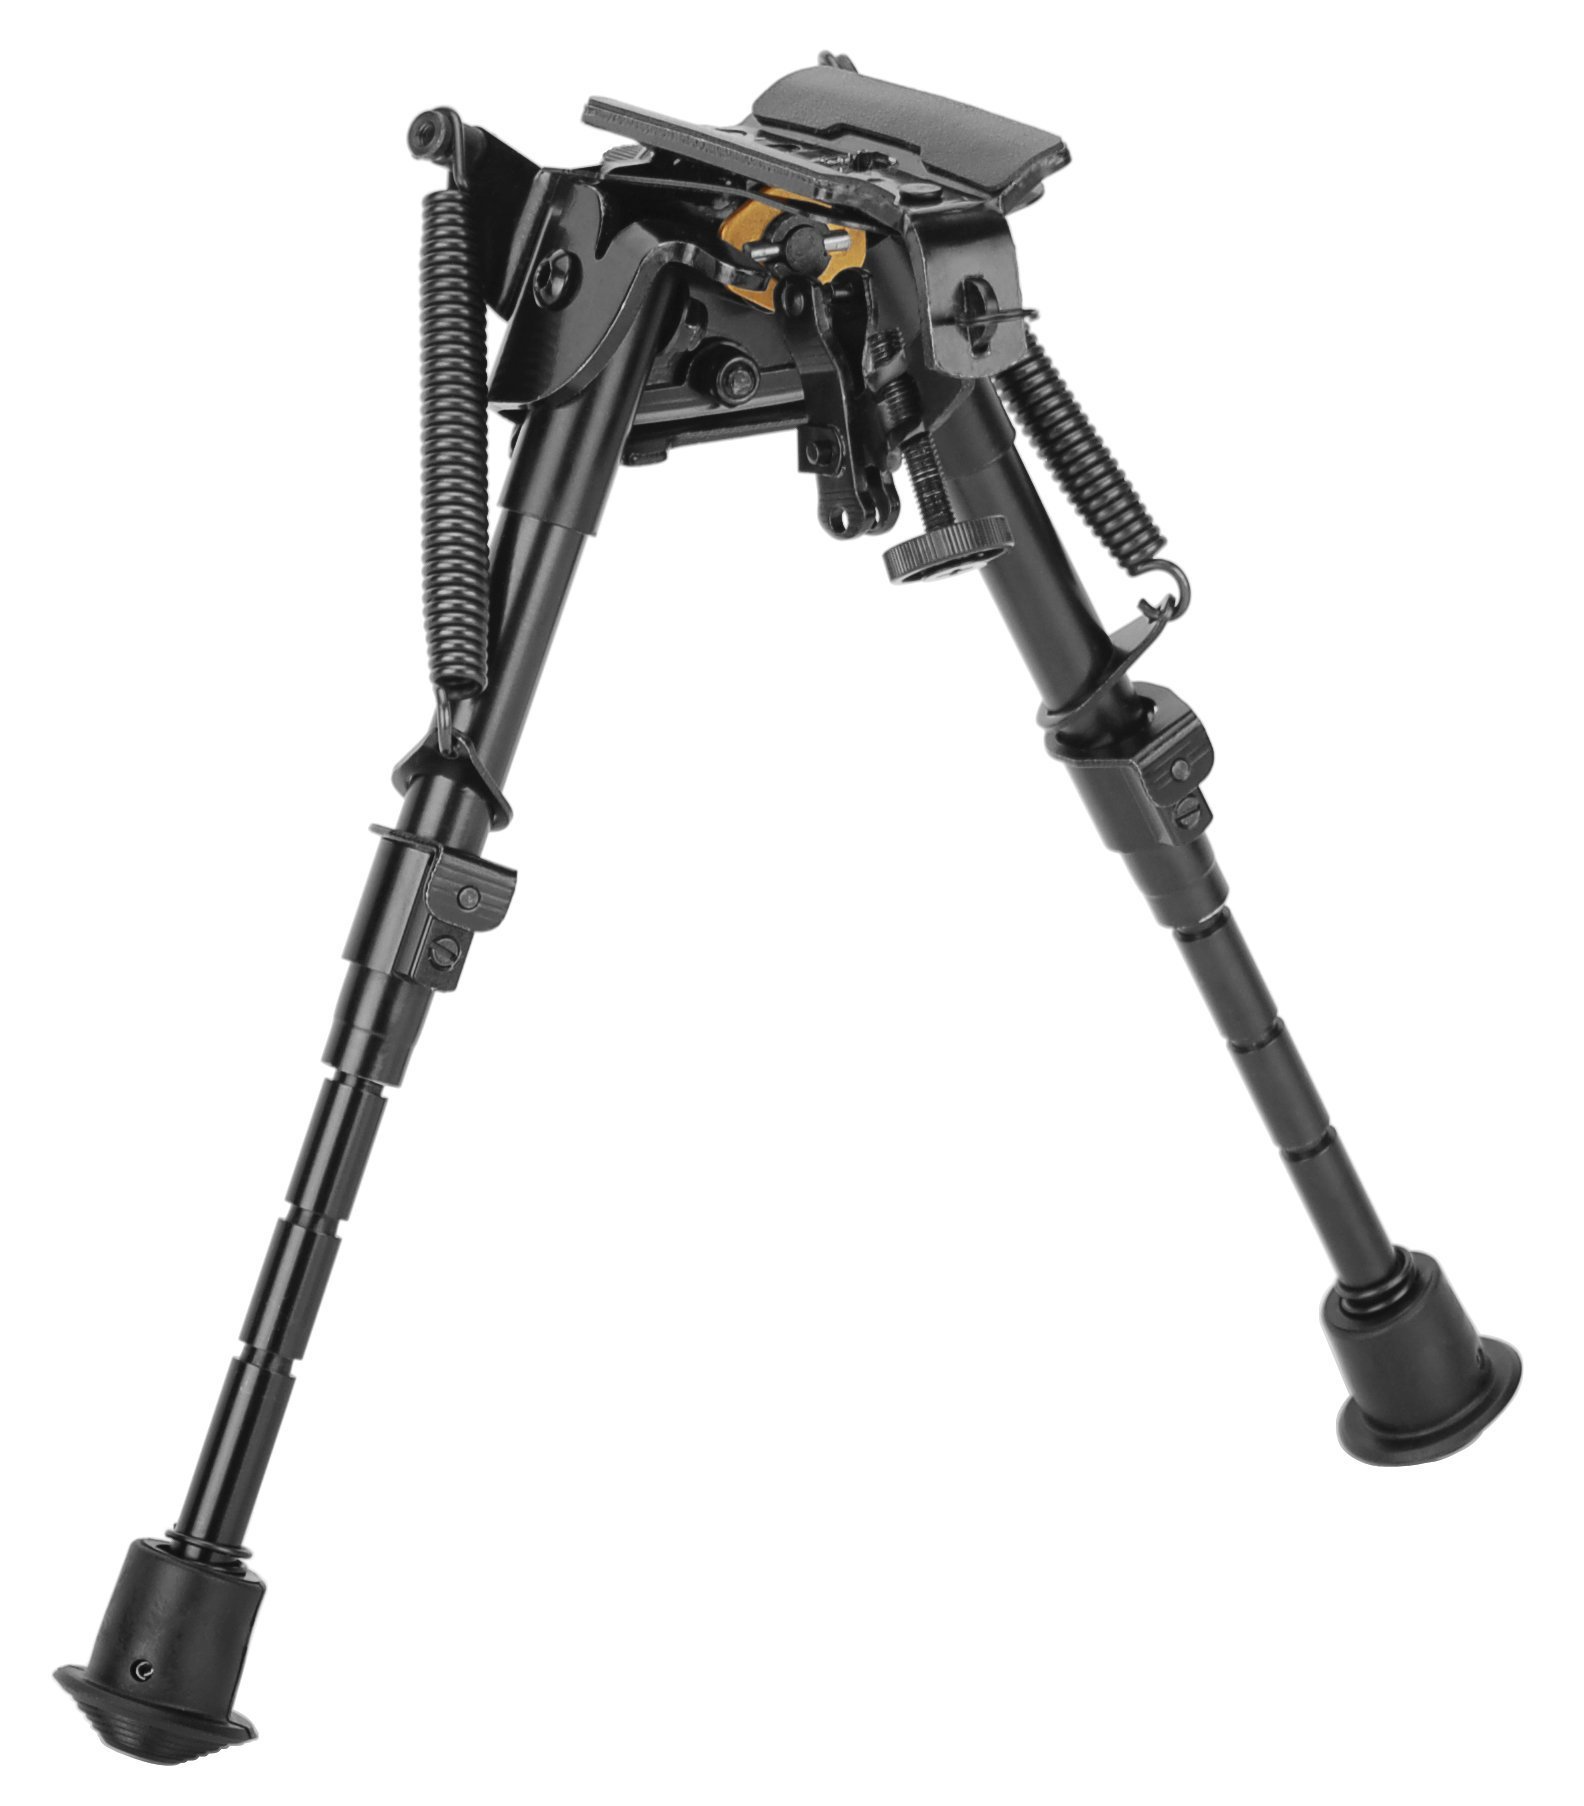 Caldwell XLA Pivot Bipod with Adjustable Notched Legs and Slim Folding Design for Easy Transport, Rifle Stability, and Target Shooting